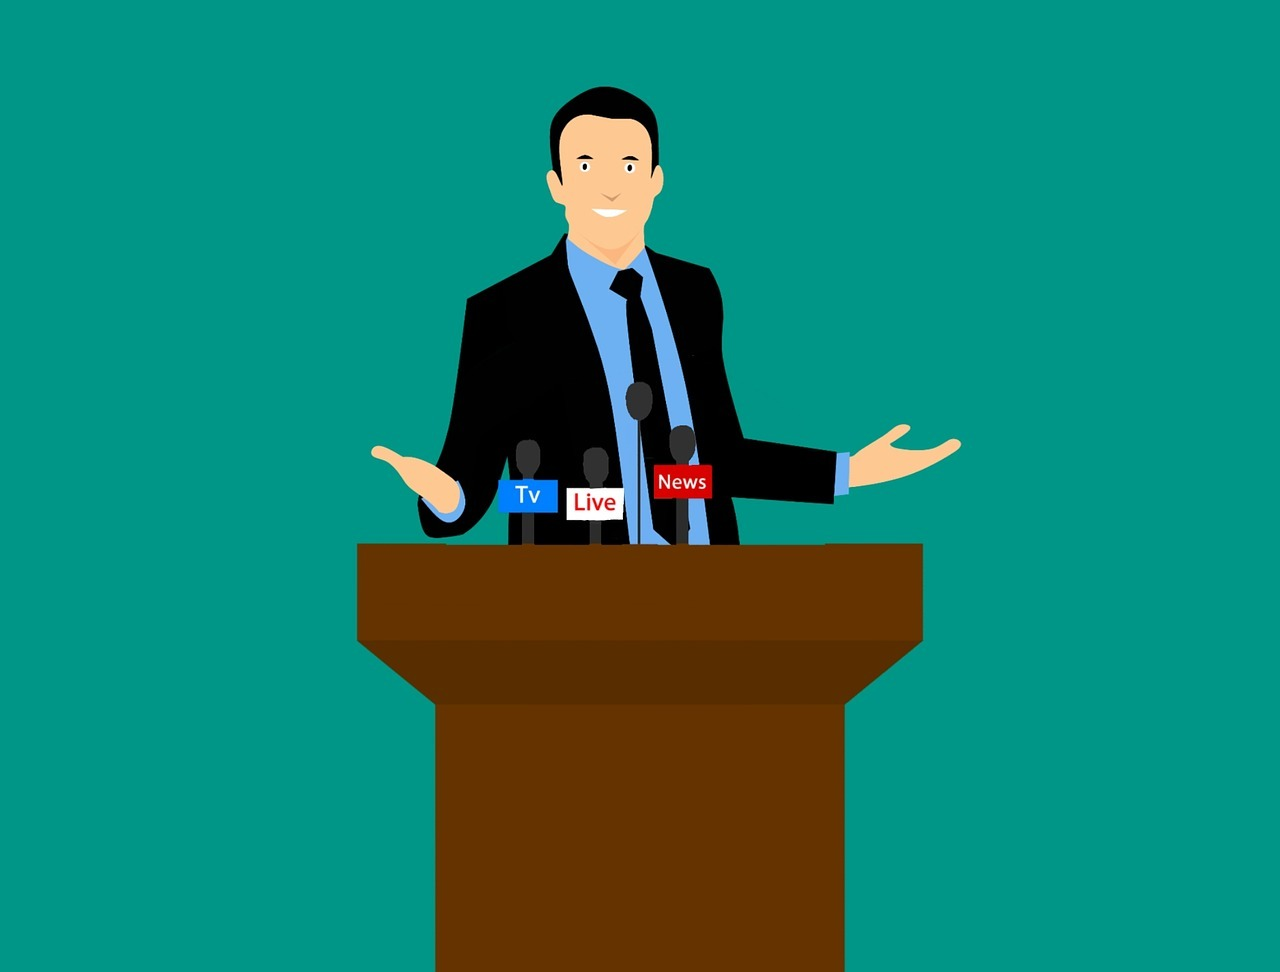 How to become a professional public speaker